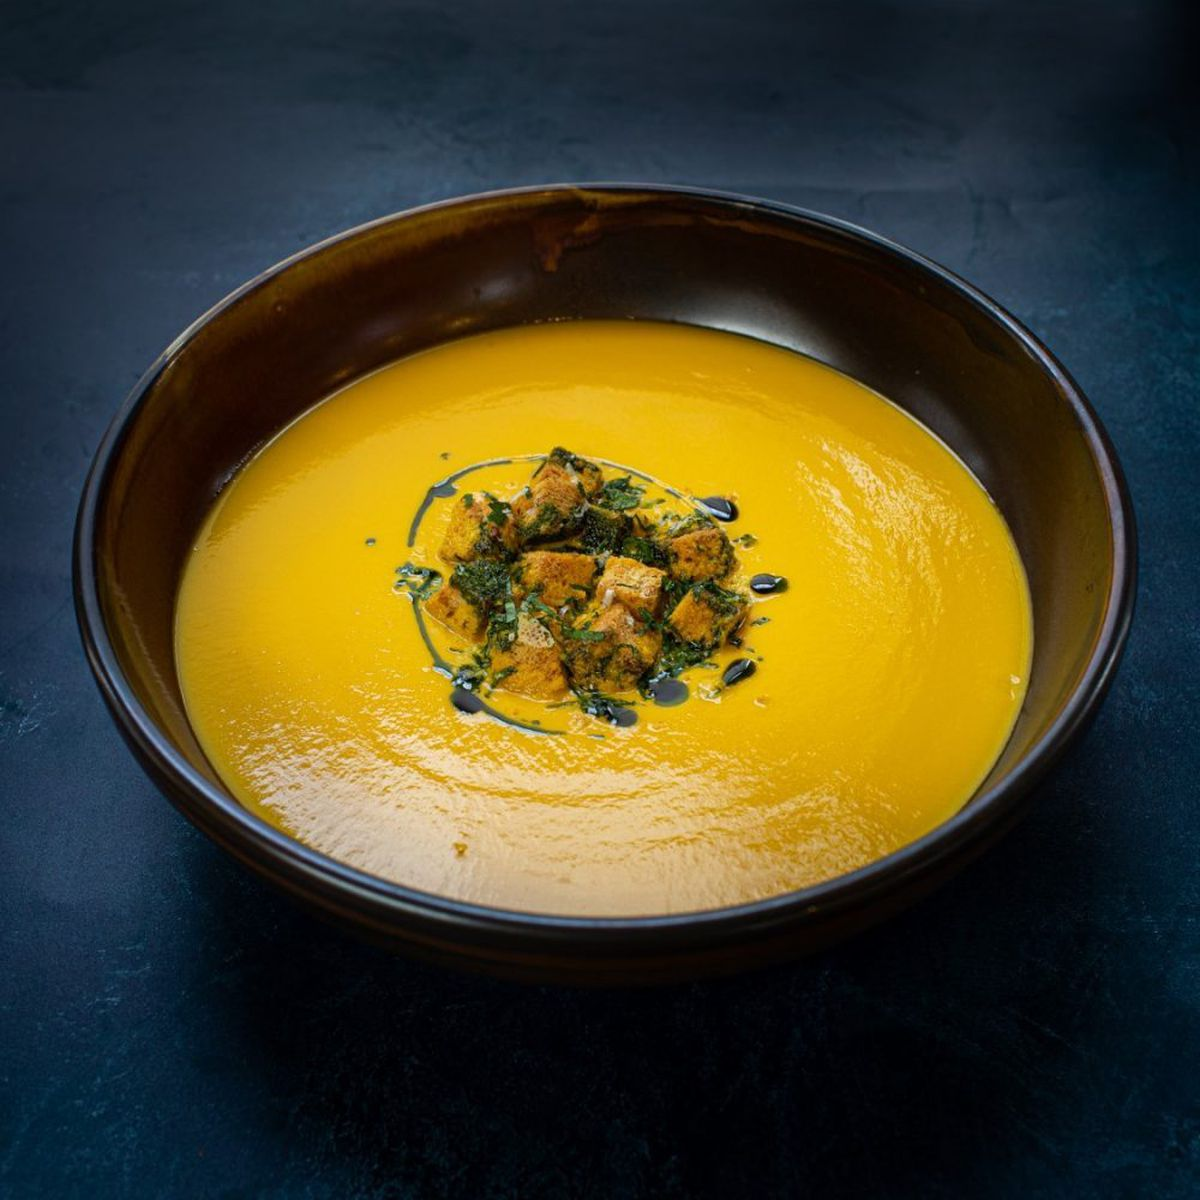 Carrot and ginger soup with parmesan croutons and pasley